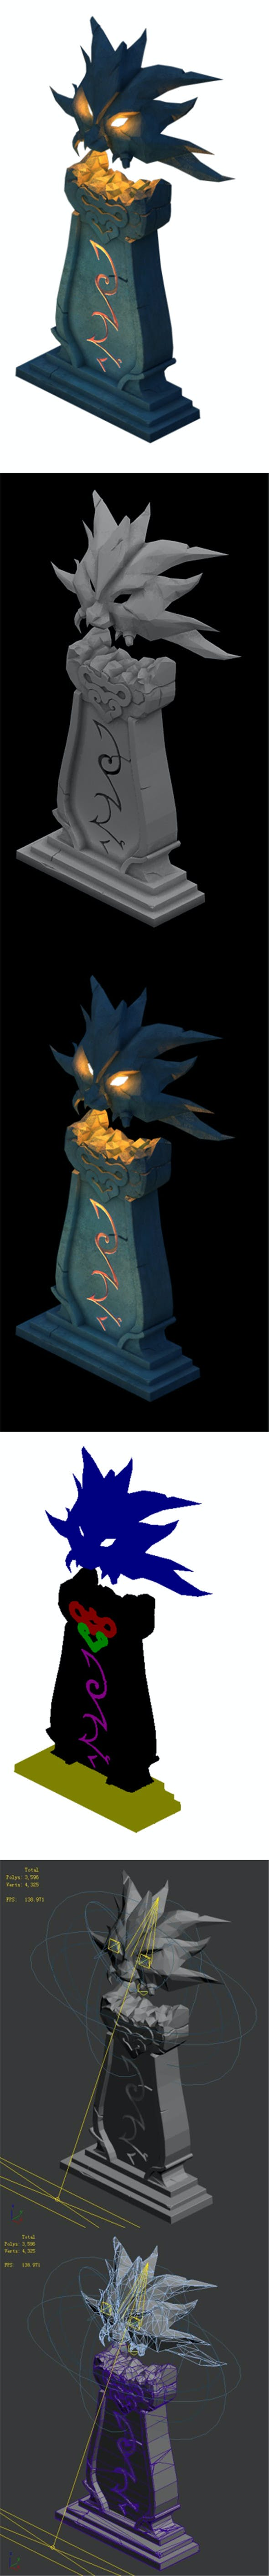 Ghost Candlestick - Stone statue - 3DOcean Item for Sale